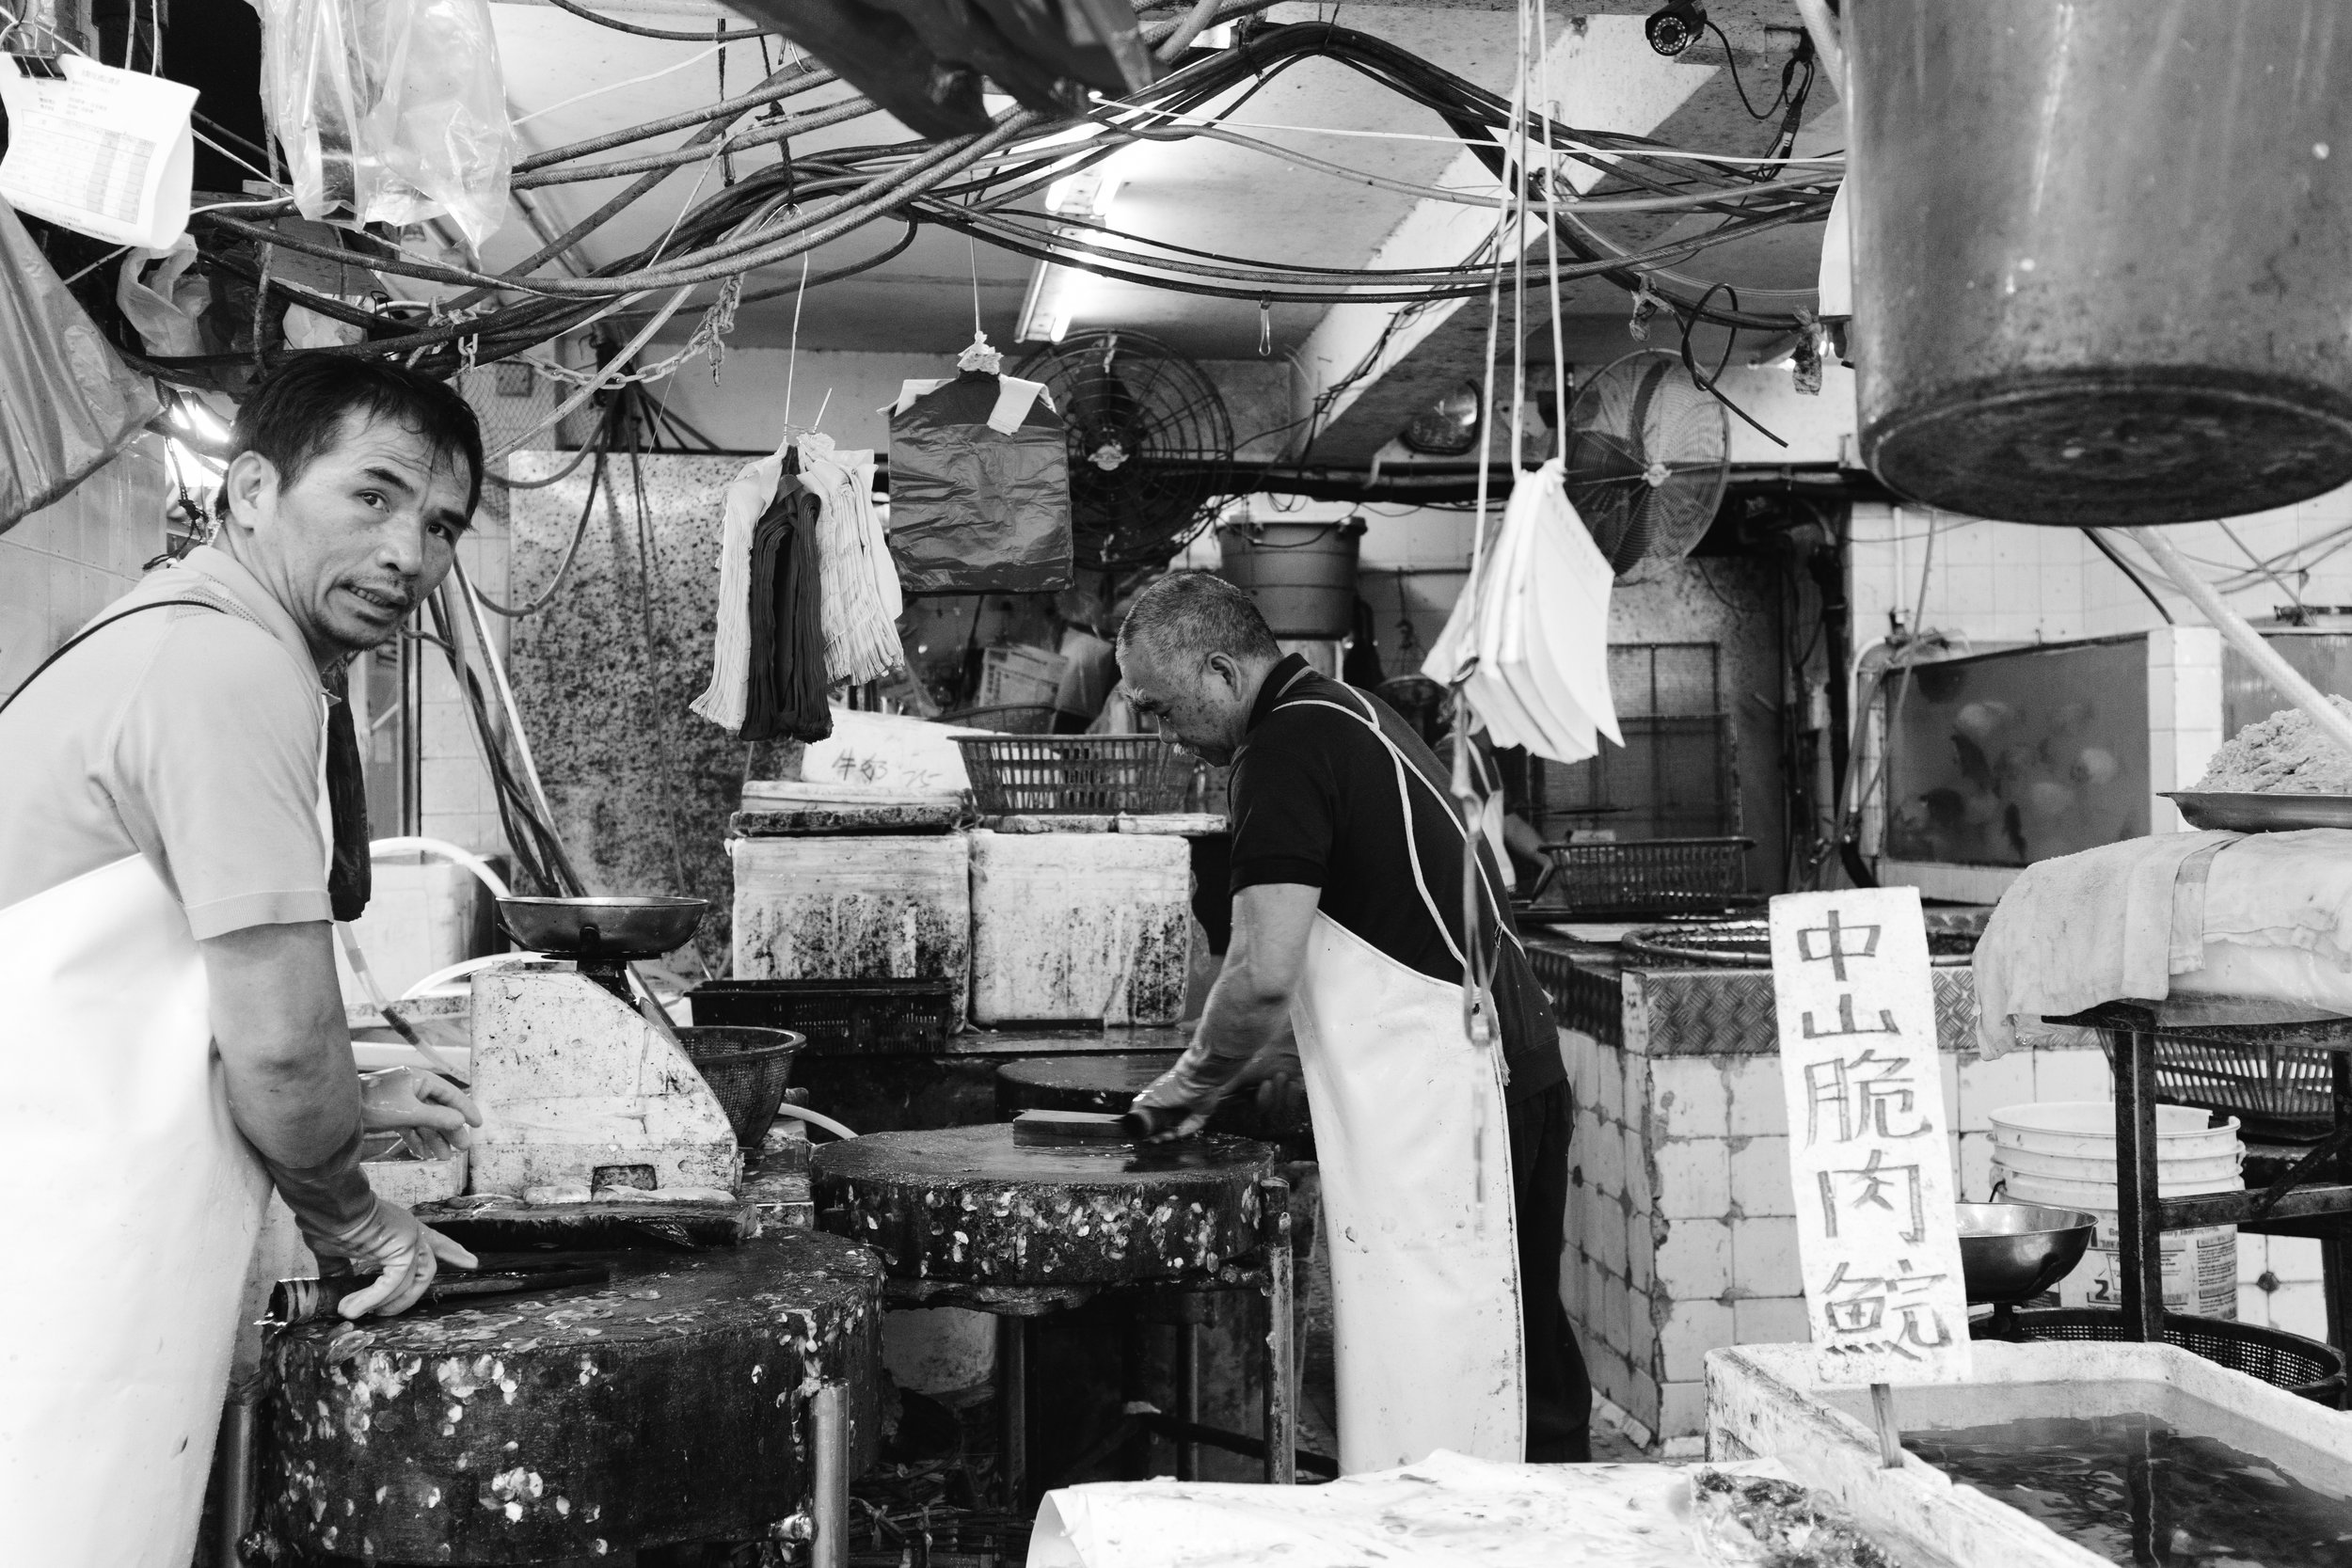 Two men are working at a fish market in Wan Chai Hong Kong